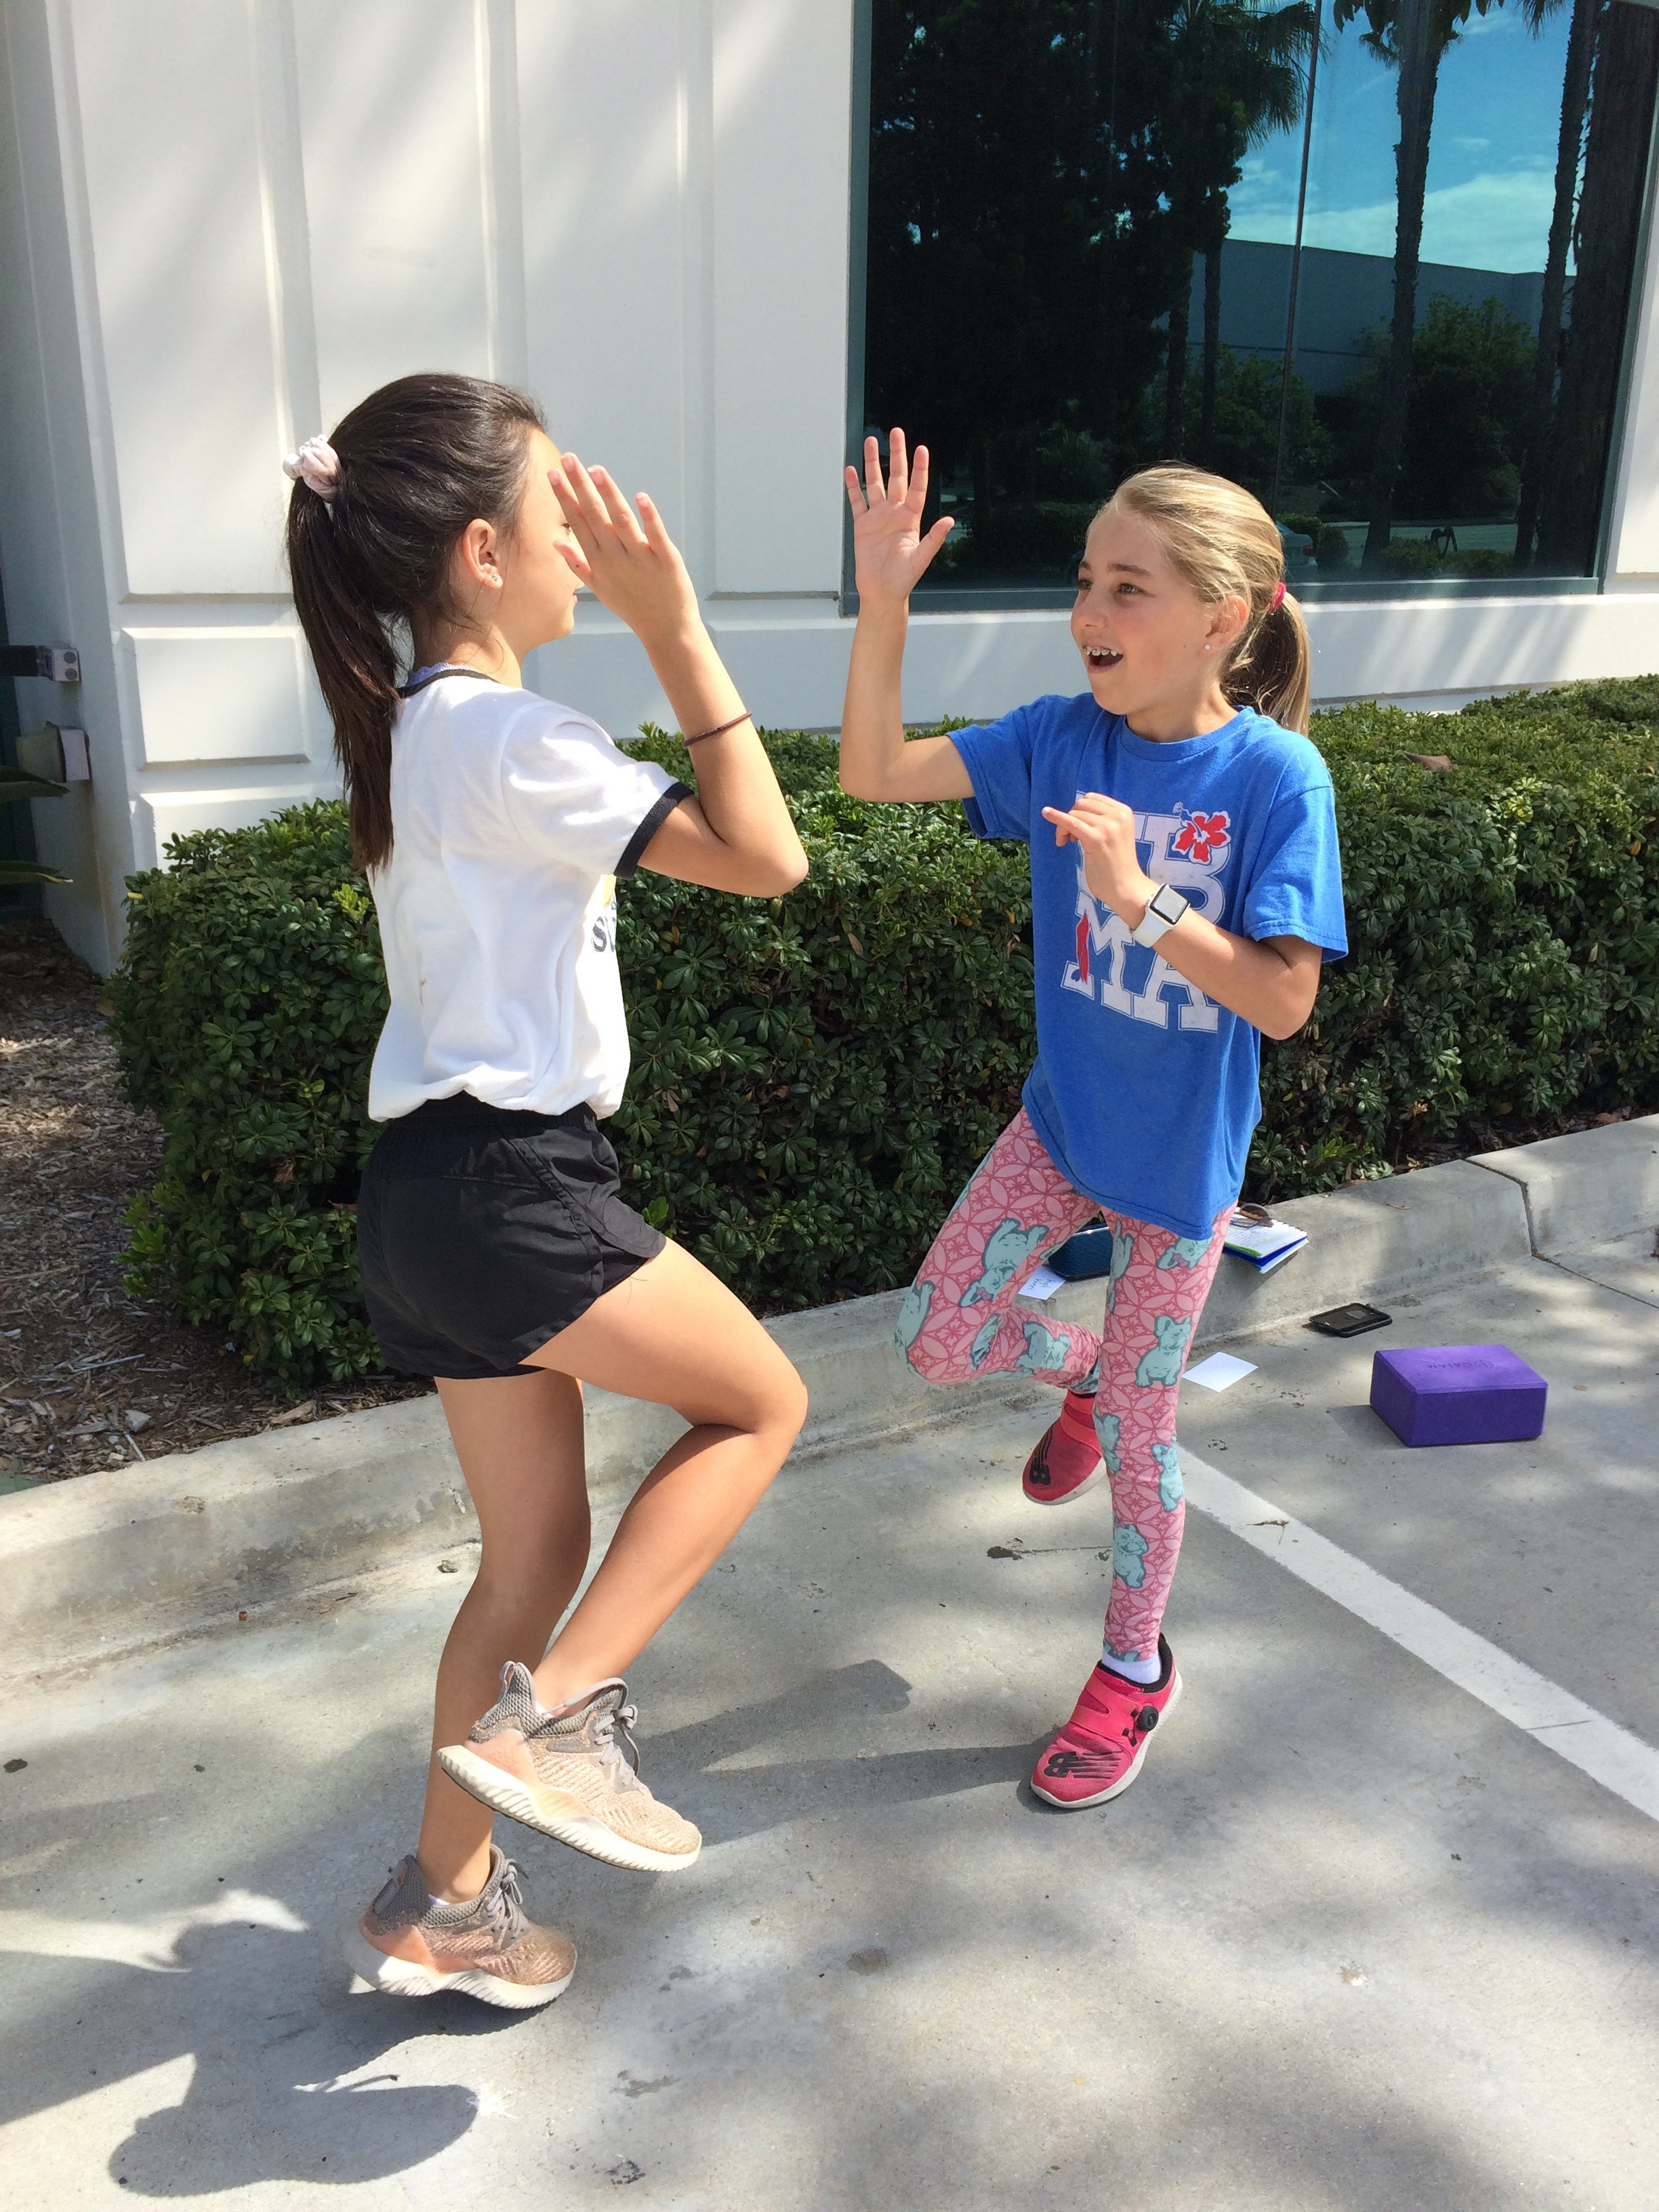 Tweens creating healthy habits at fitness classes